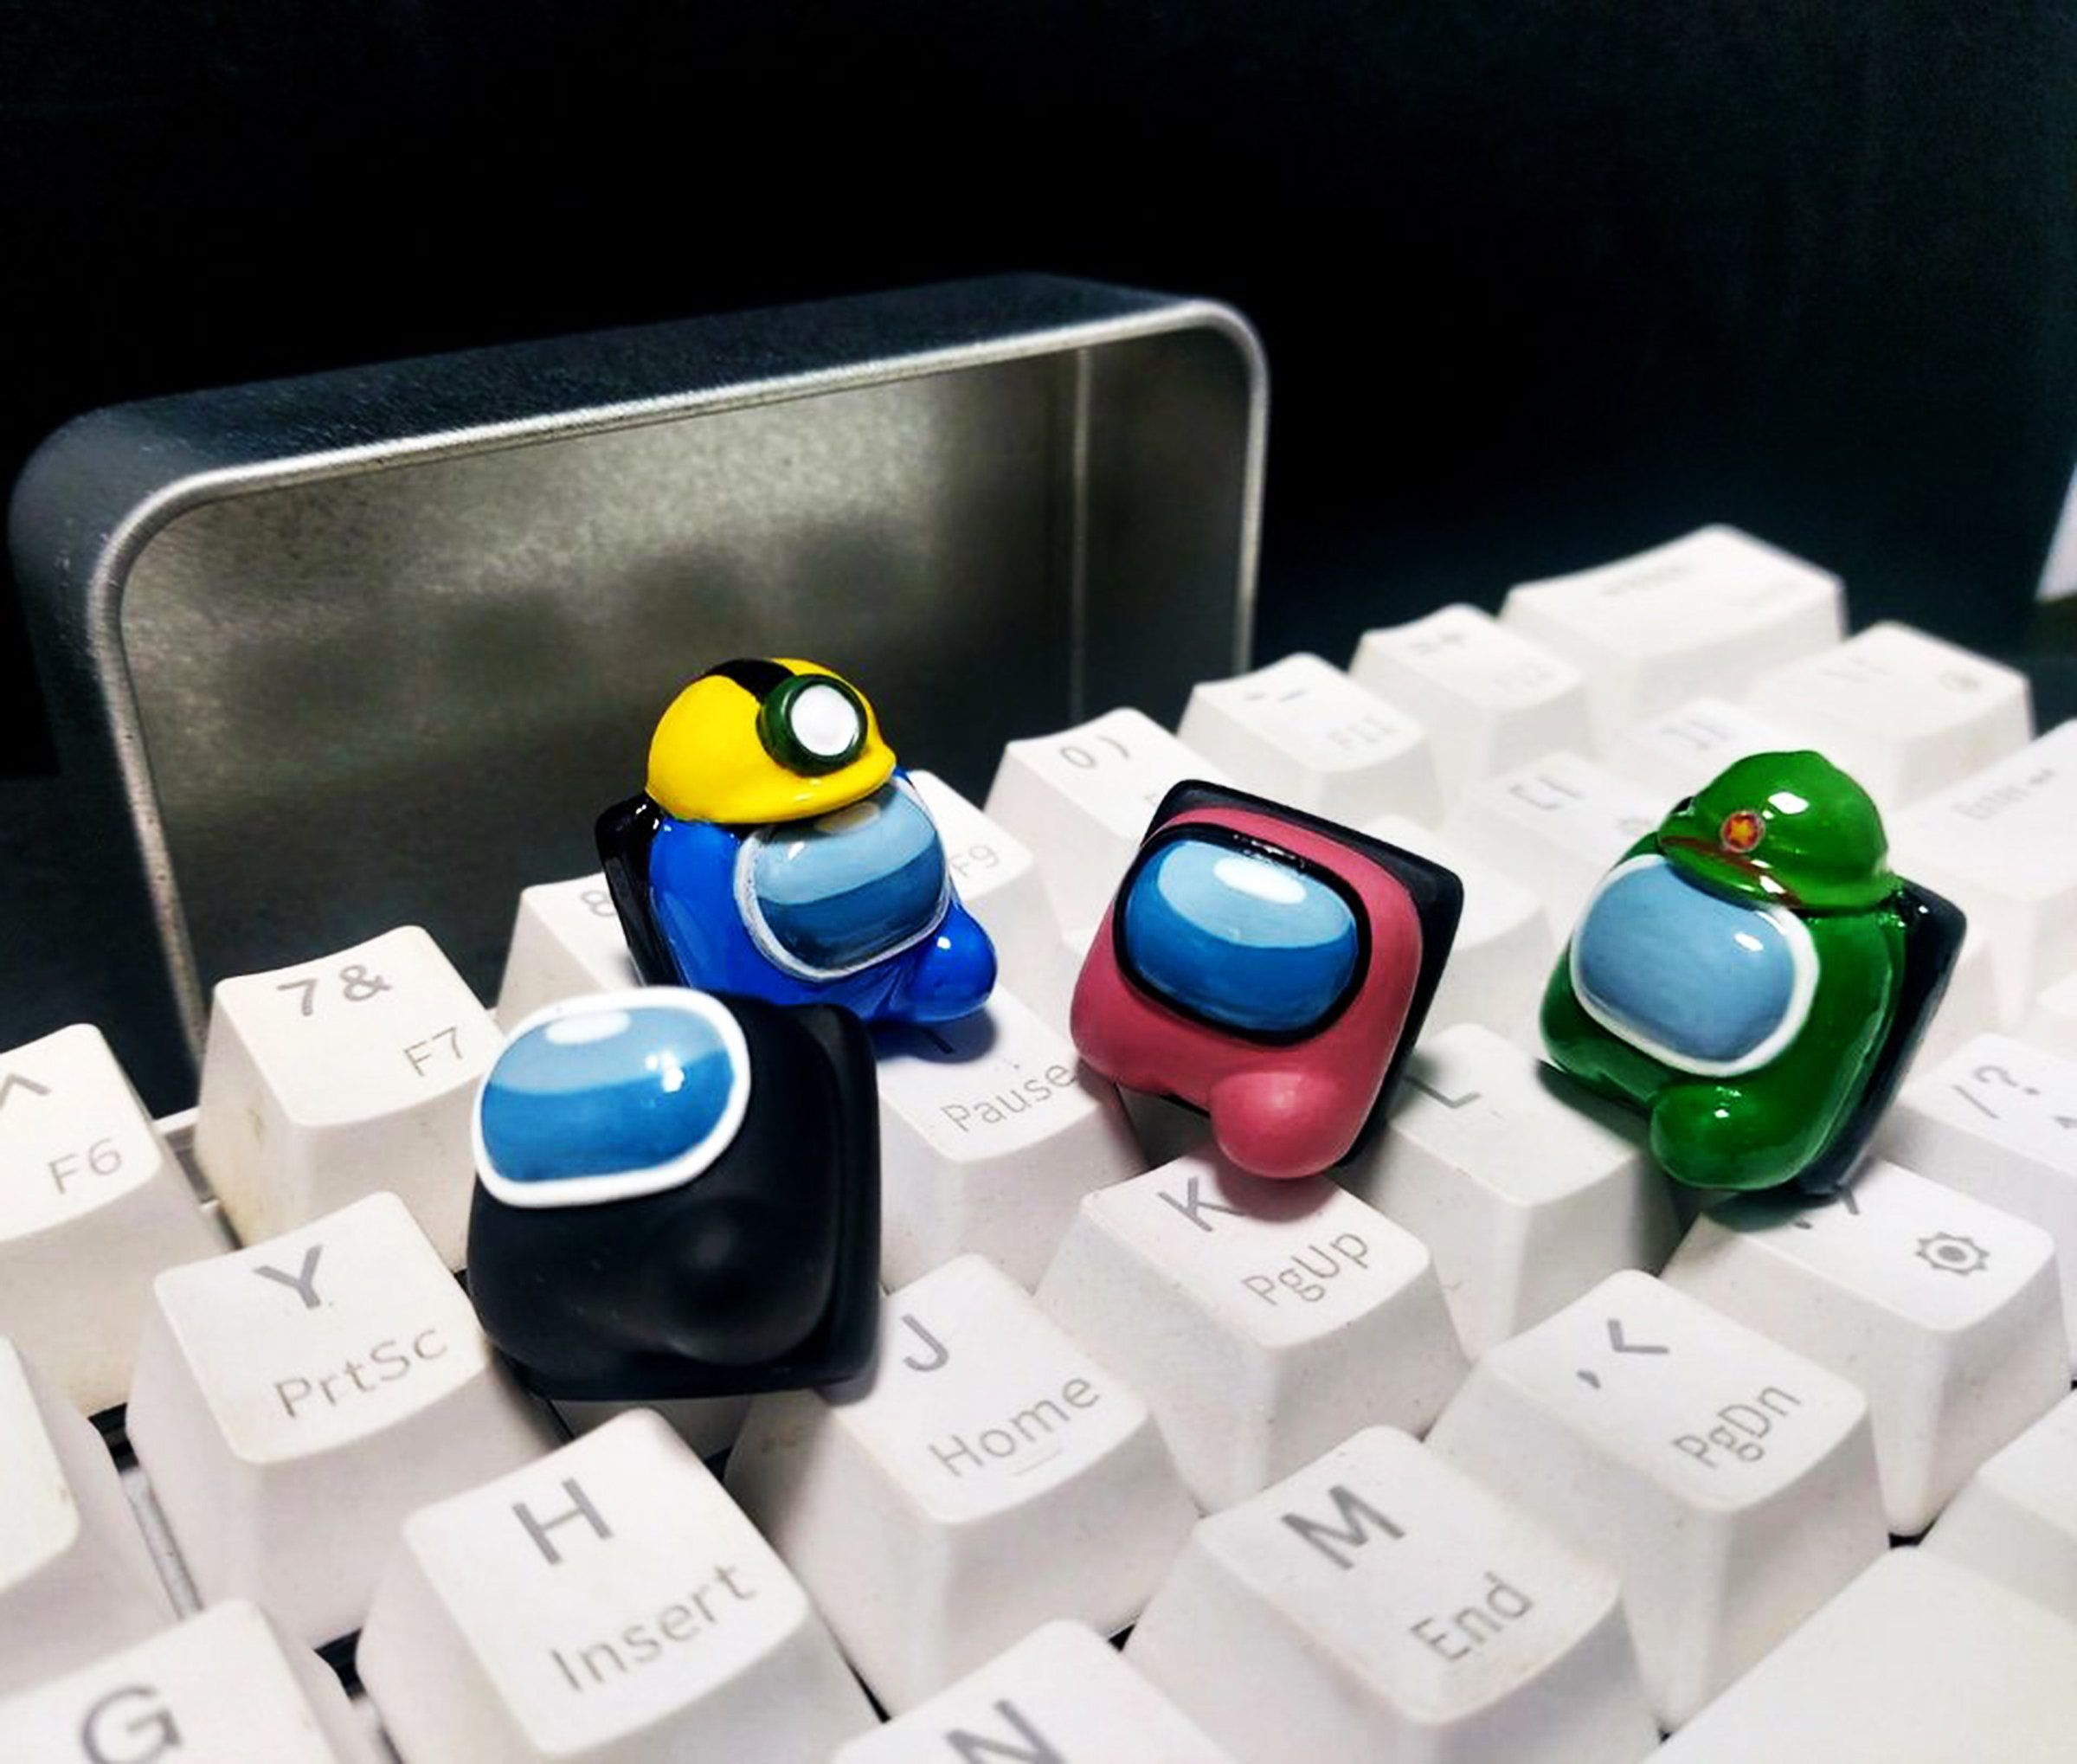 Handmade Among Us Emotion Resin Keycaps Among Us Acessories Mini Crewmembers Lovely Gifts For Frien Video Game Room Design Cowboy Theme Party Gaming Products